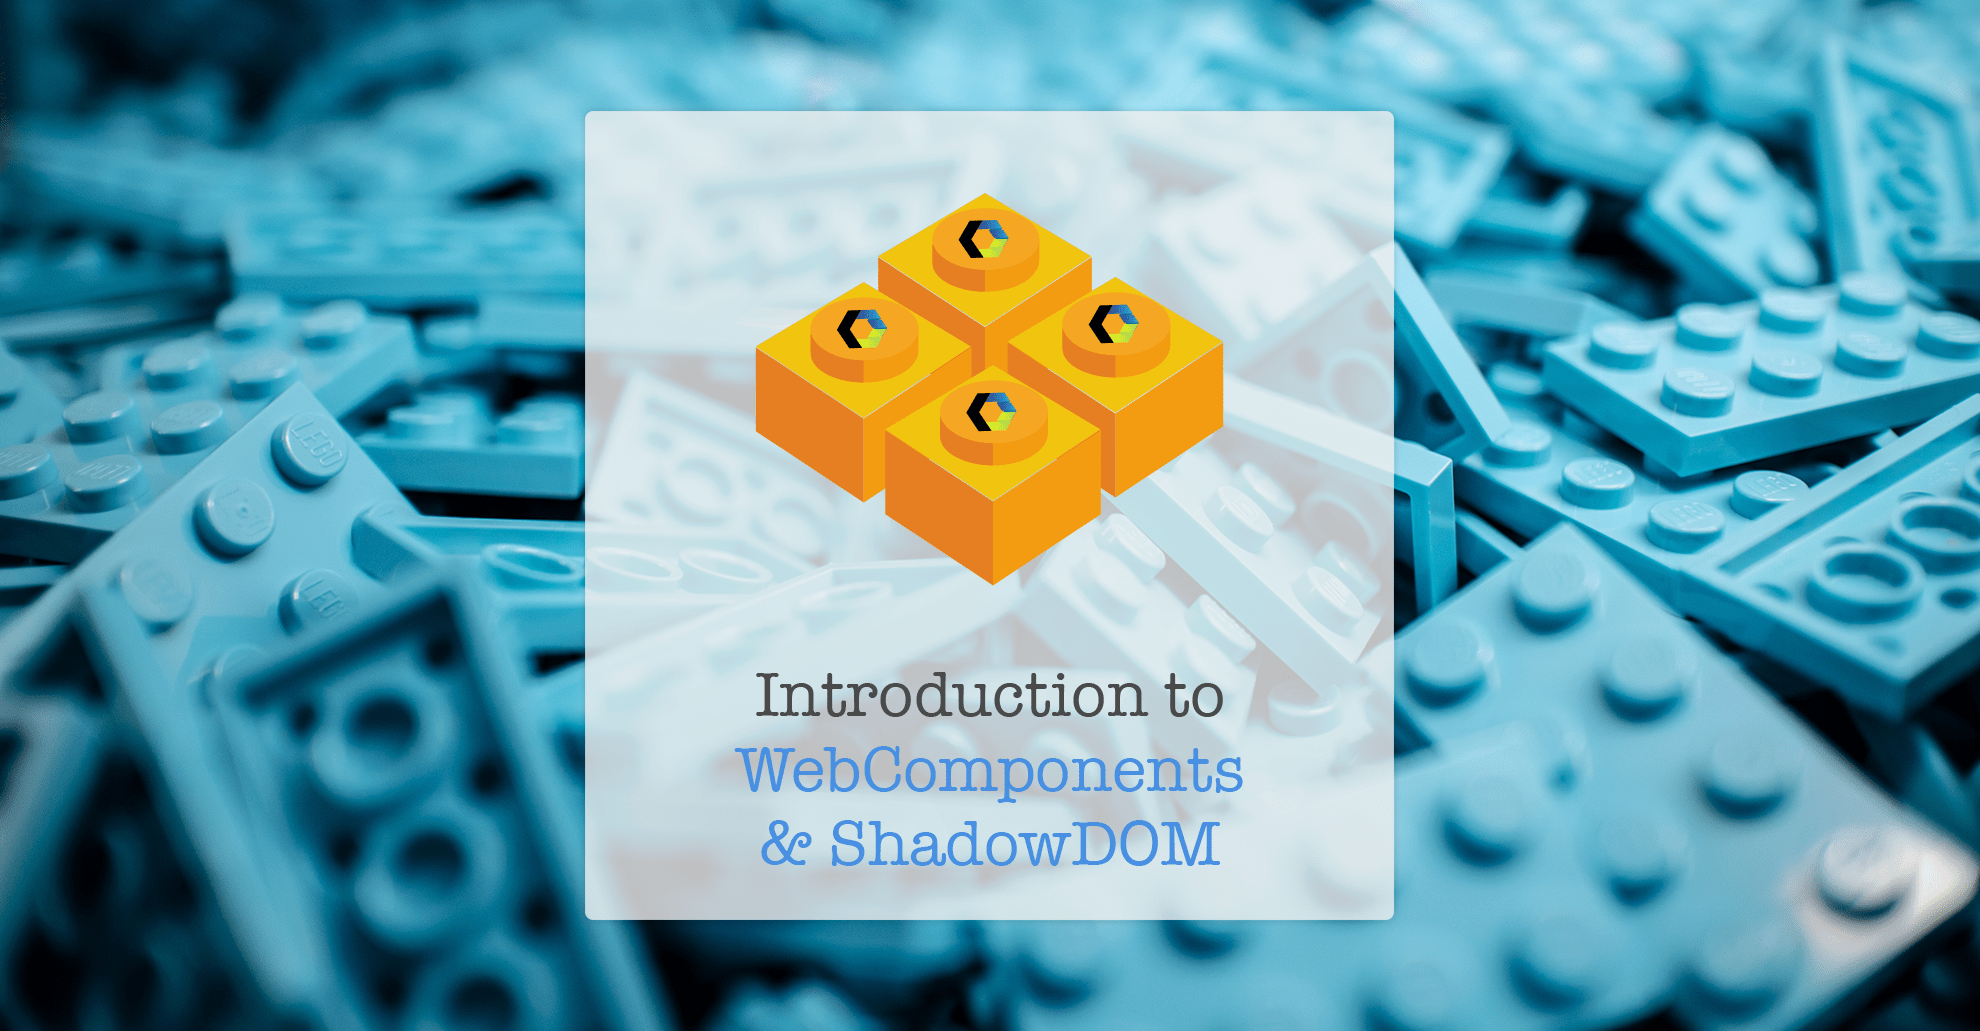 Introduction to WebComponents